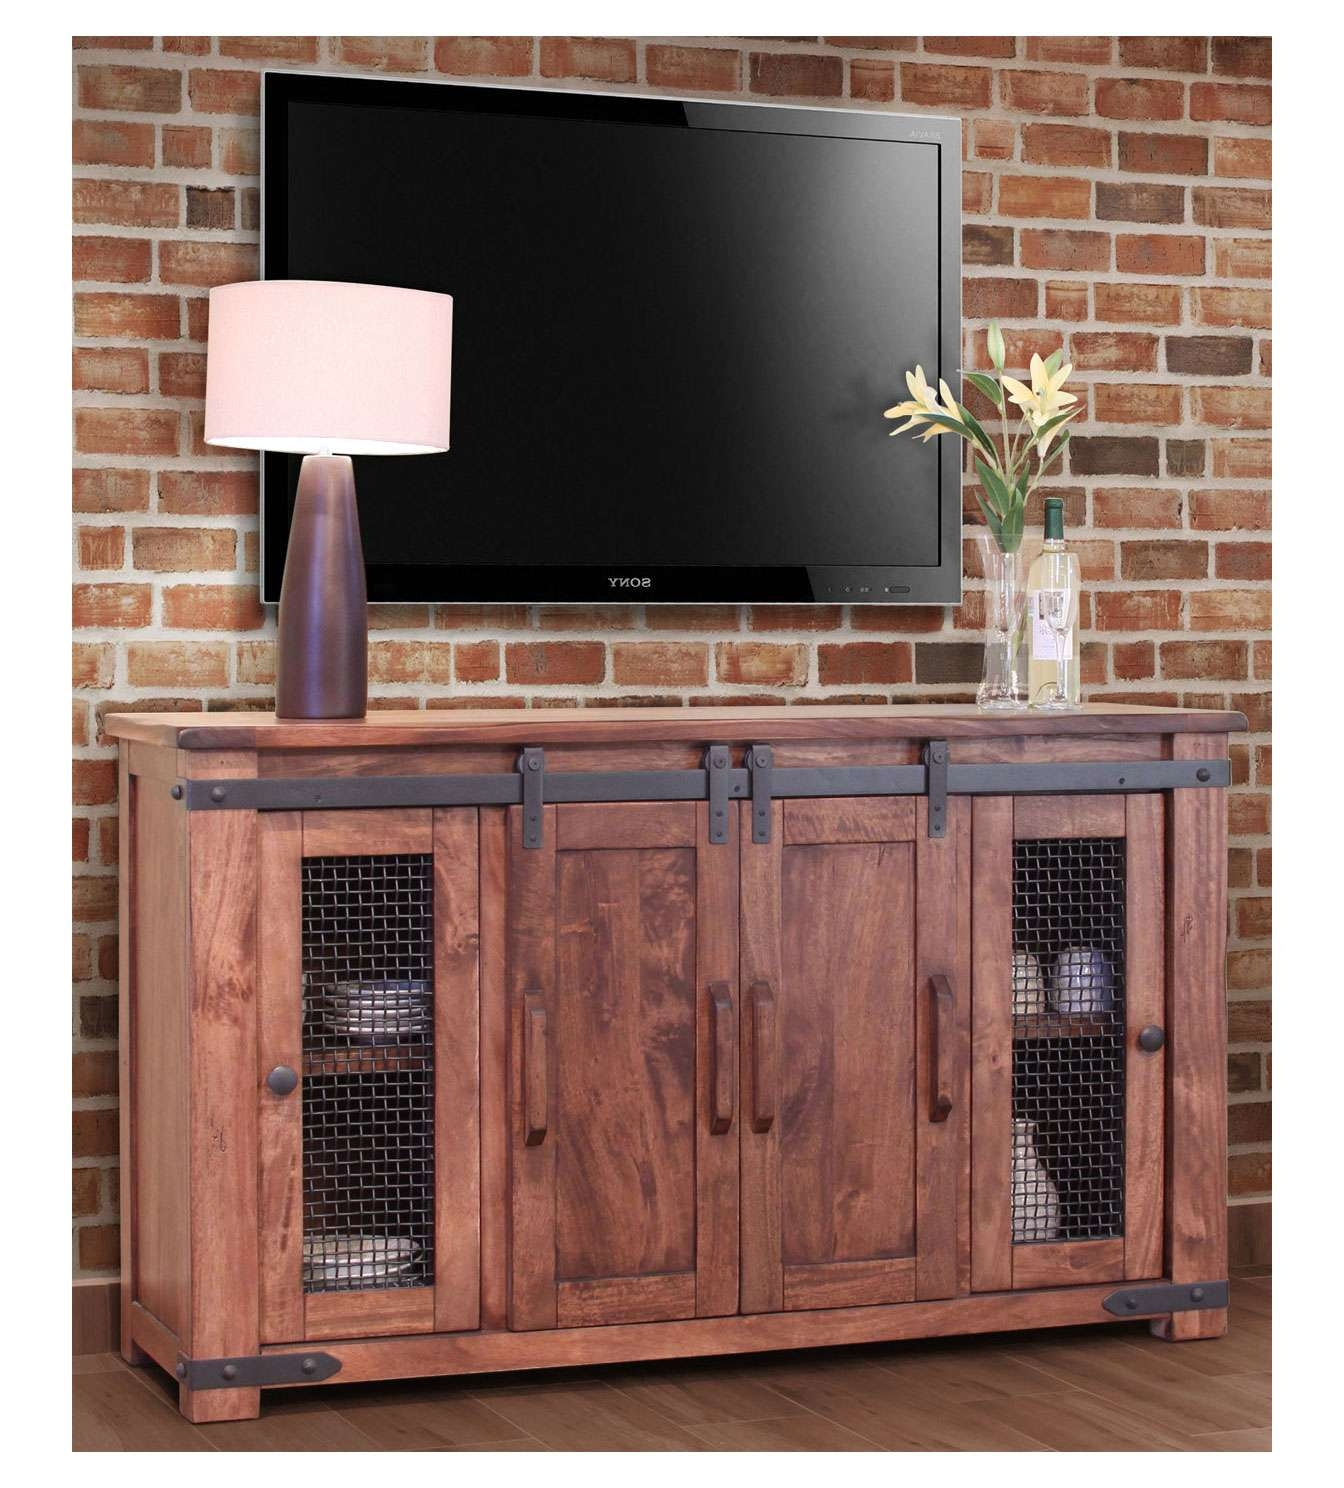 Lovely Tall Skinny Tv Stand 12 For Your Home Decorating Ideas With Intended For Tall Skinny Tv Stands (View 6 of 15)